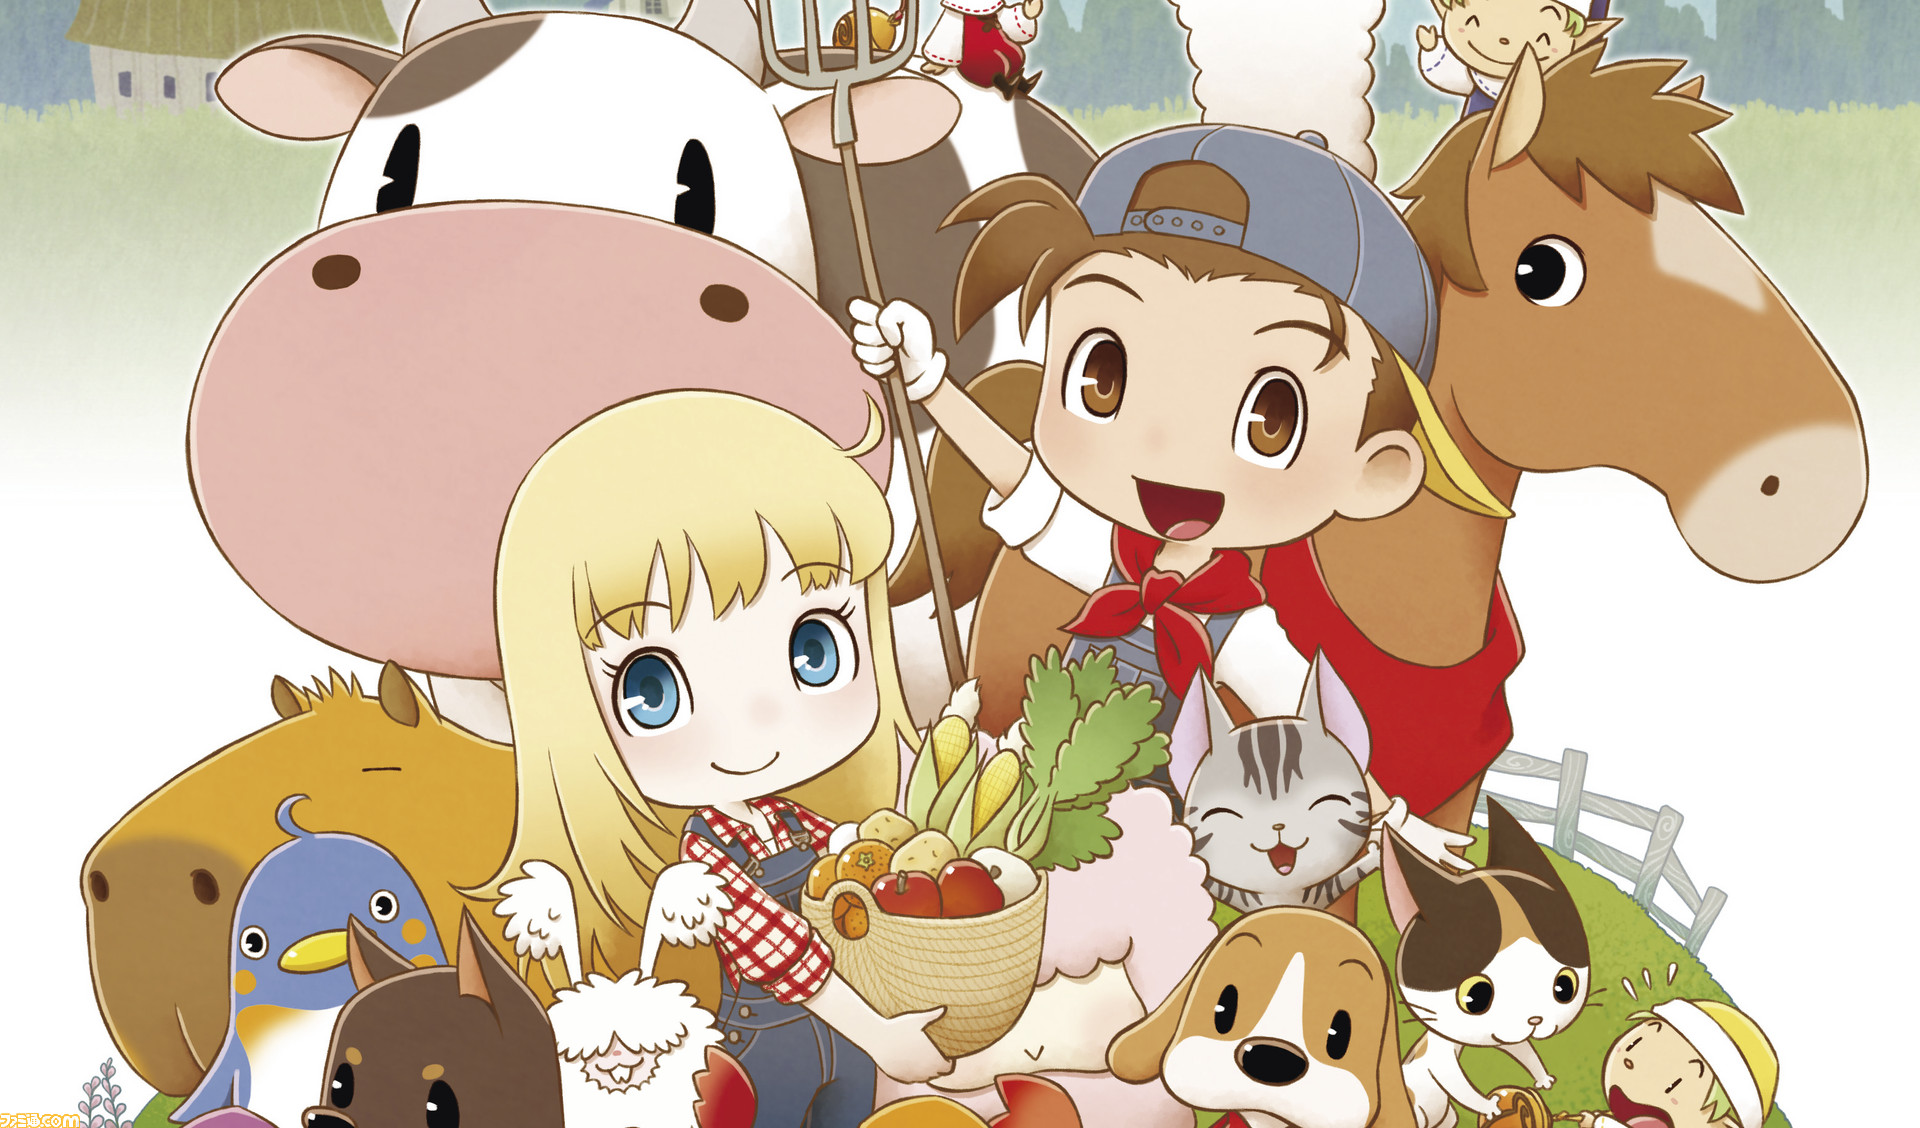 Marvelous anuncia remake de Harvest Moon: Friends of Mineral Town para o Nintendo Switch